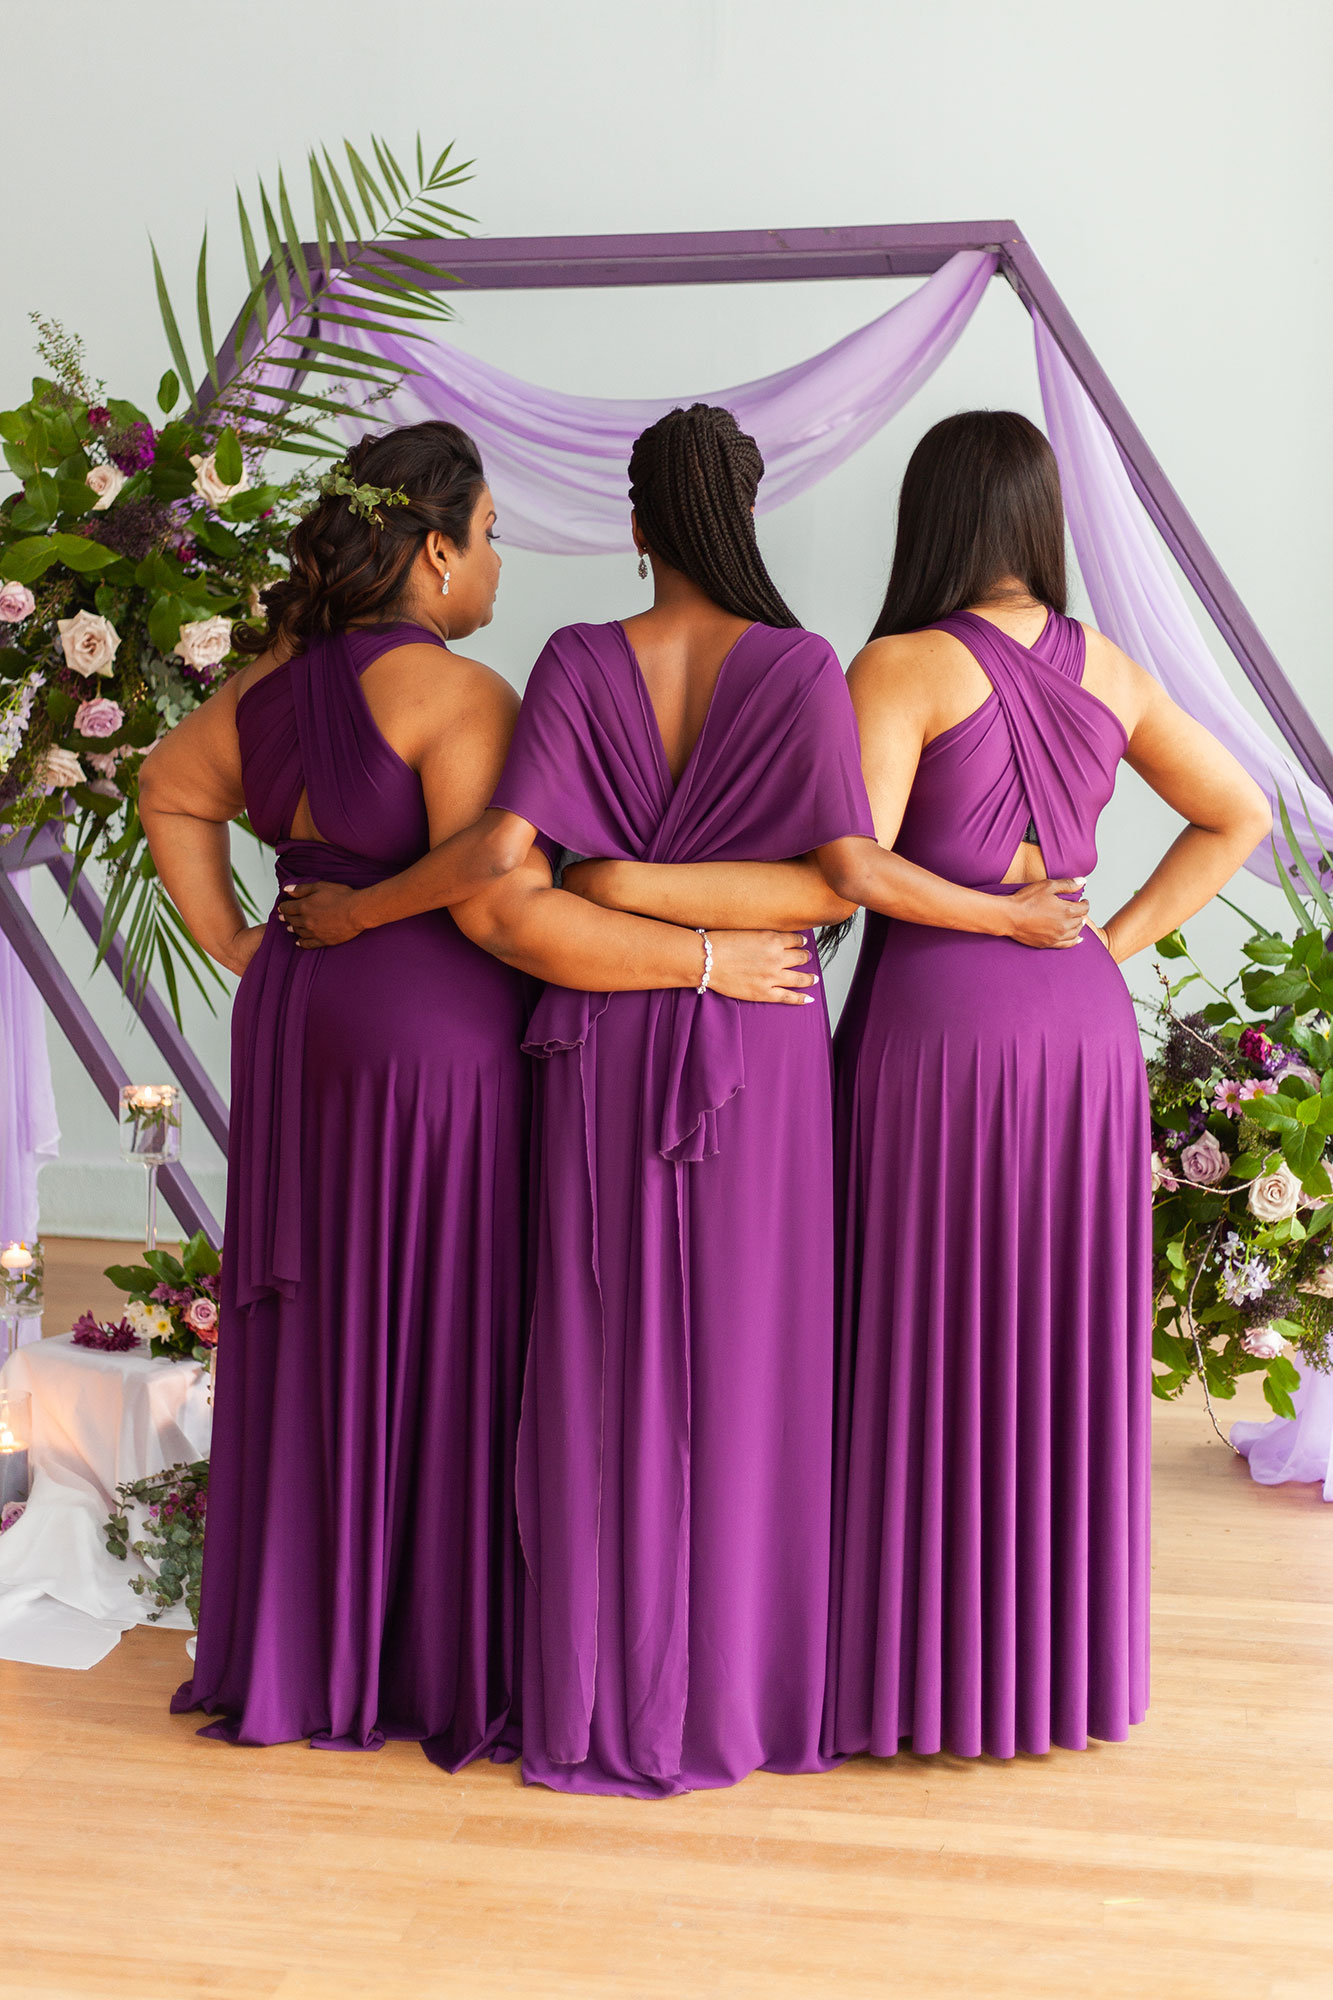 Henkaa fall wedding collection with bridesmaids in purple dresses